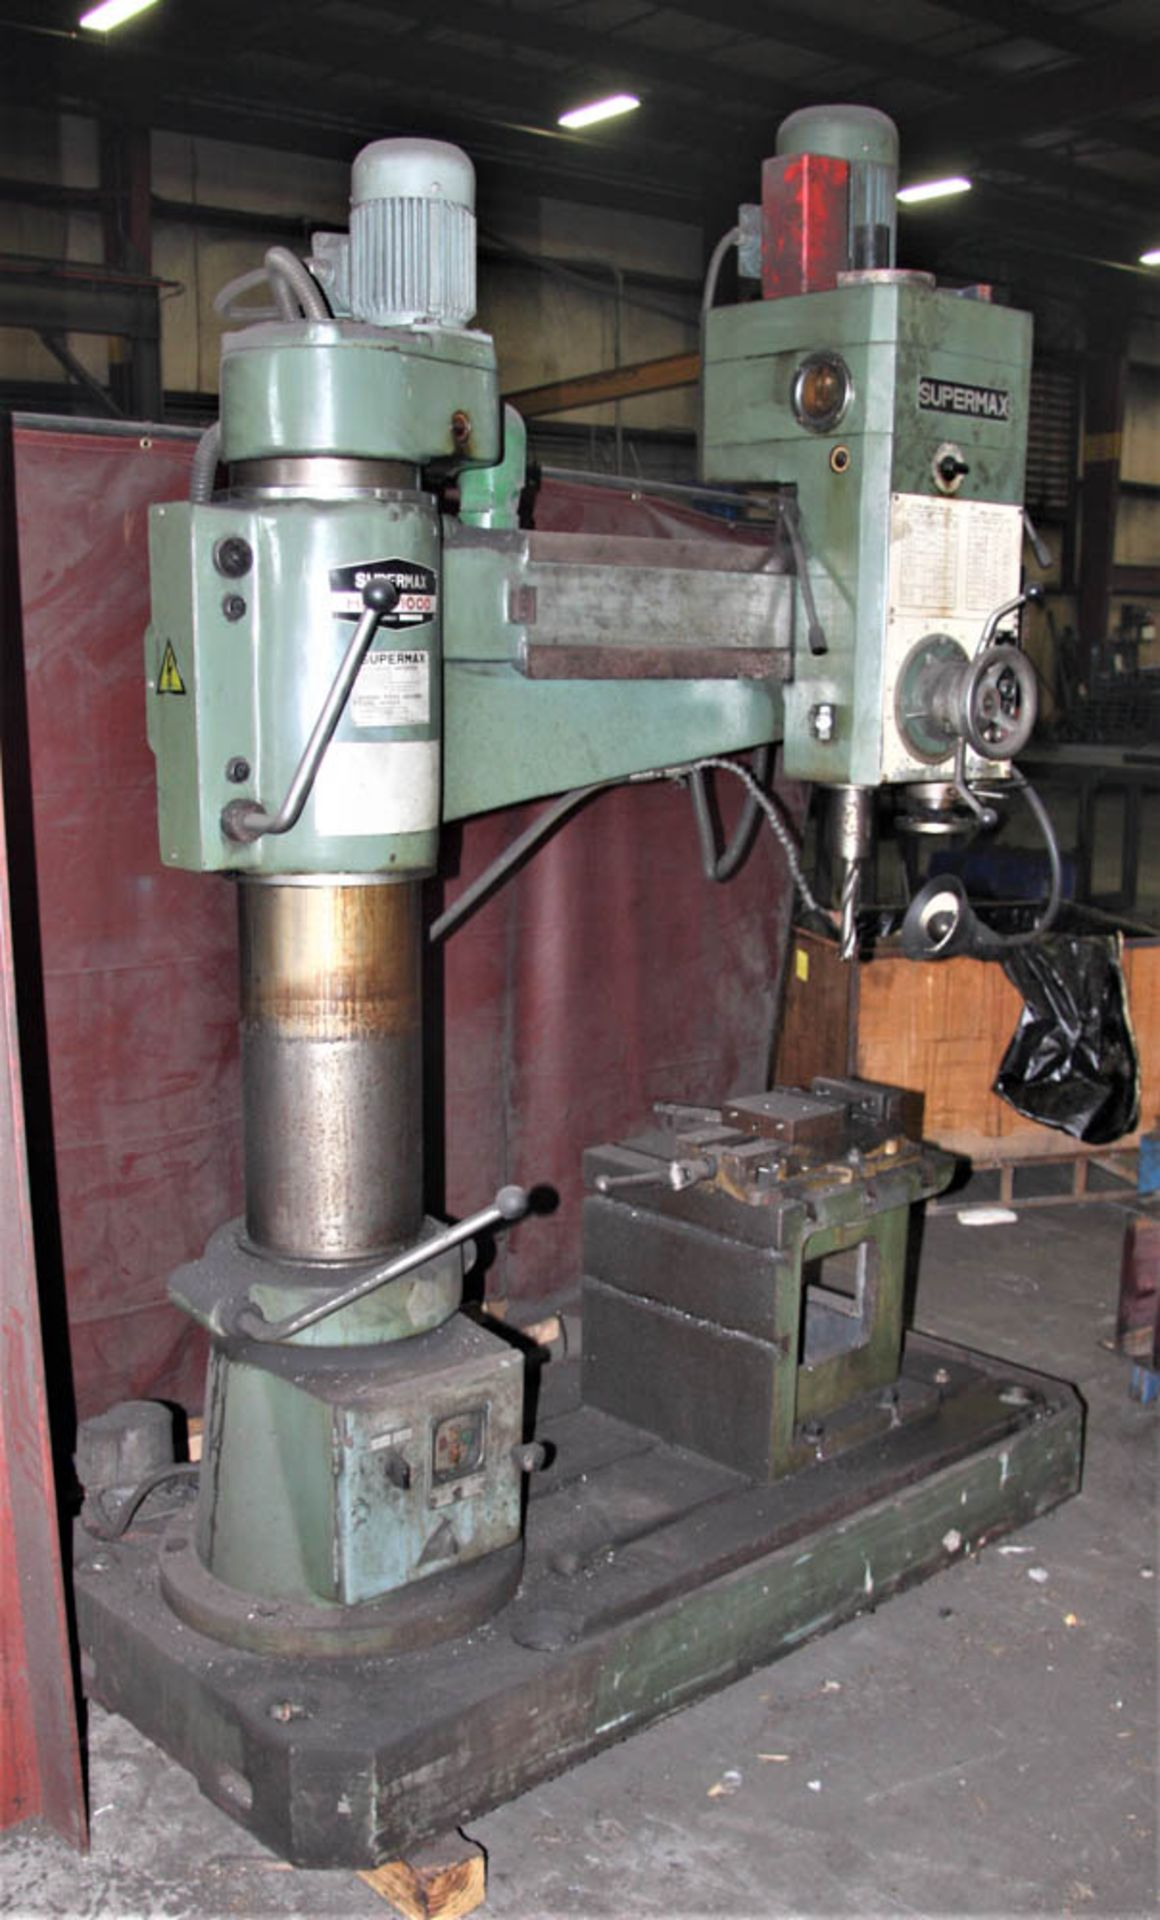 """SUPERMAX MDL. HRD-1000 3' X 9' RADIAL ARM DRILL, POWER ELEVATION, COOLANT, 17"""" X 18"""" X 18"""" T-SLOTTED"""